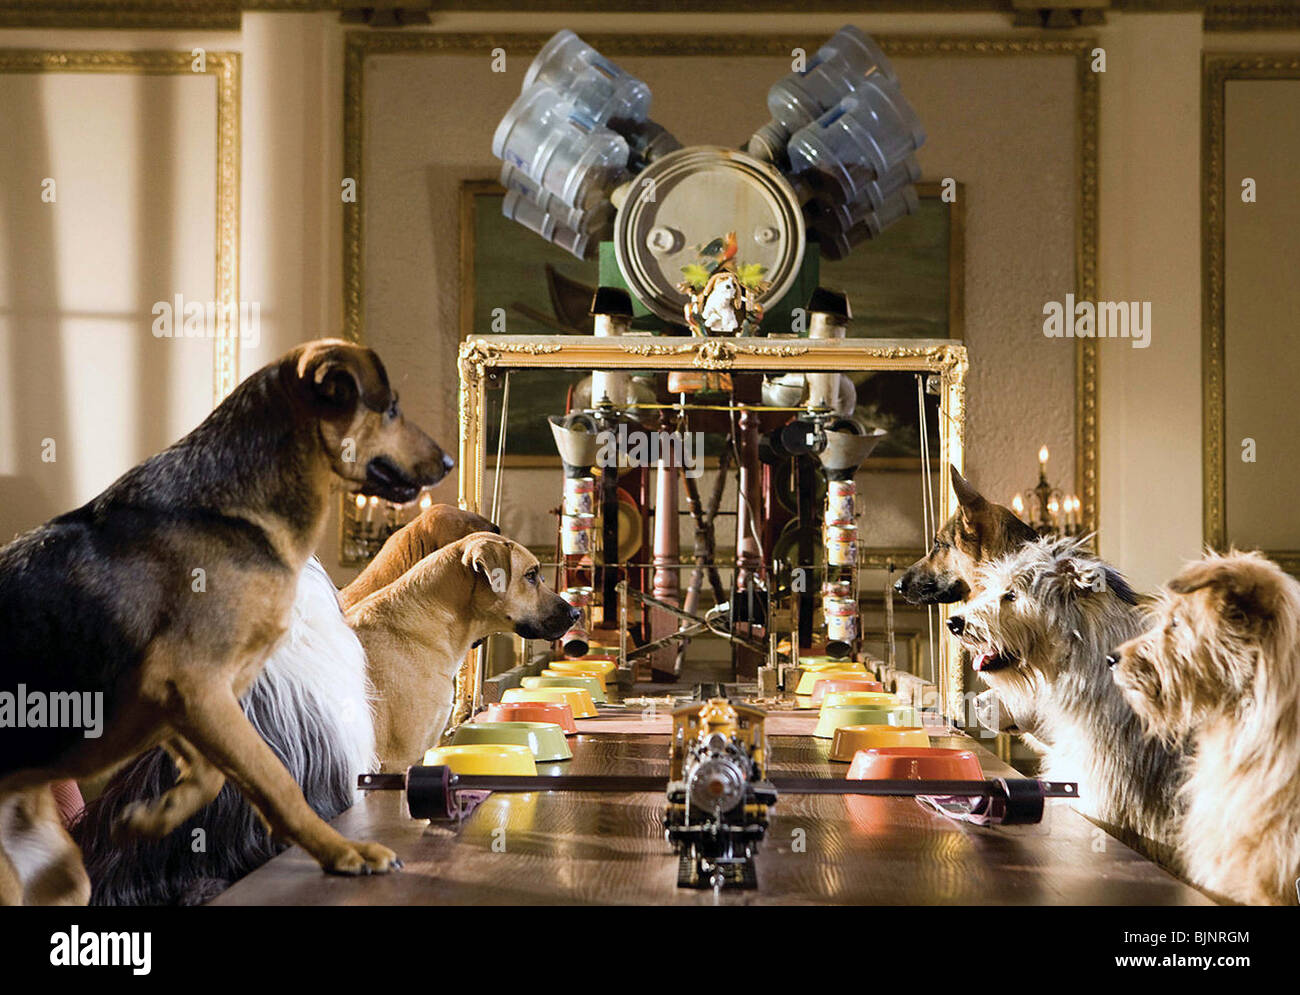 HOTEL FOR DOGS (2009) THOR FREUDENTHAL (DIR) 004 - Stock Image